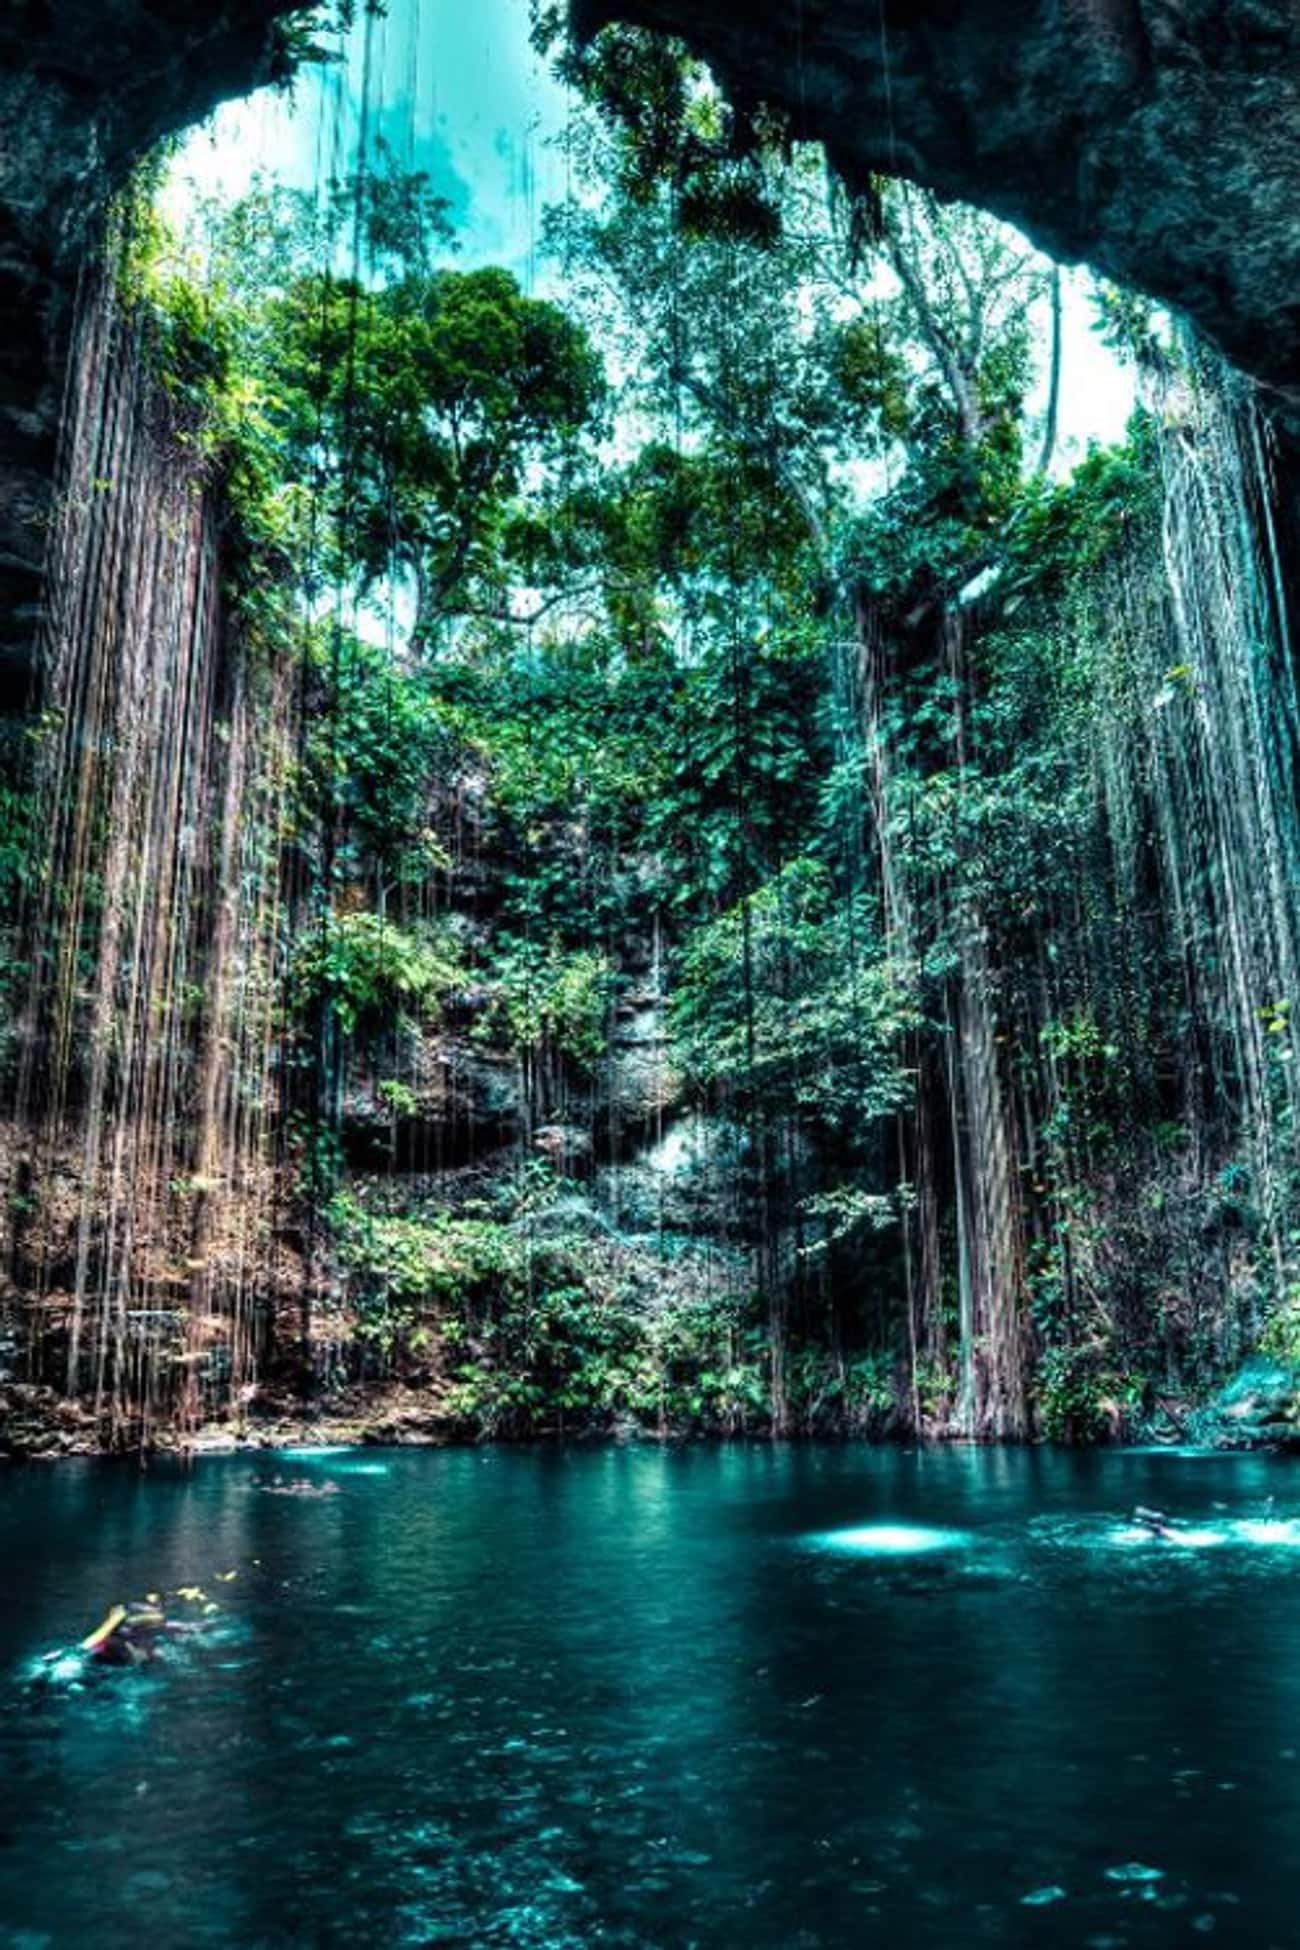 Grutas Tolantongo in Mexico is listed (or ranked) 1 on the list 40 Photos of Fantasy Landscapes That Really Exist